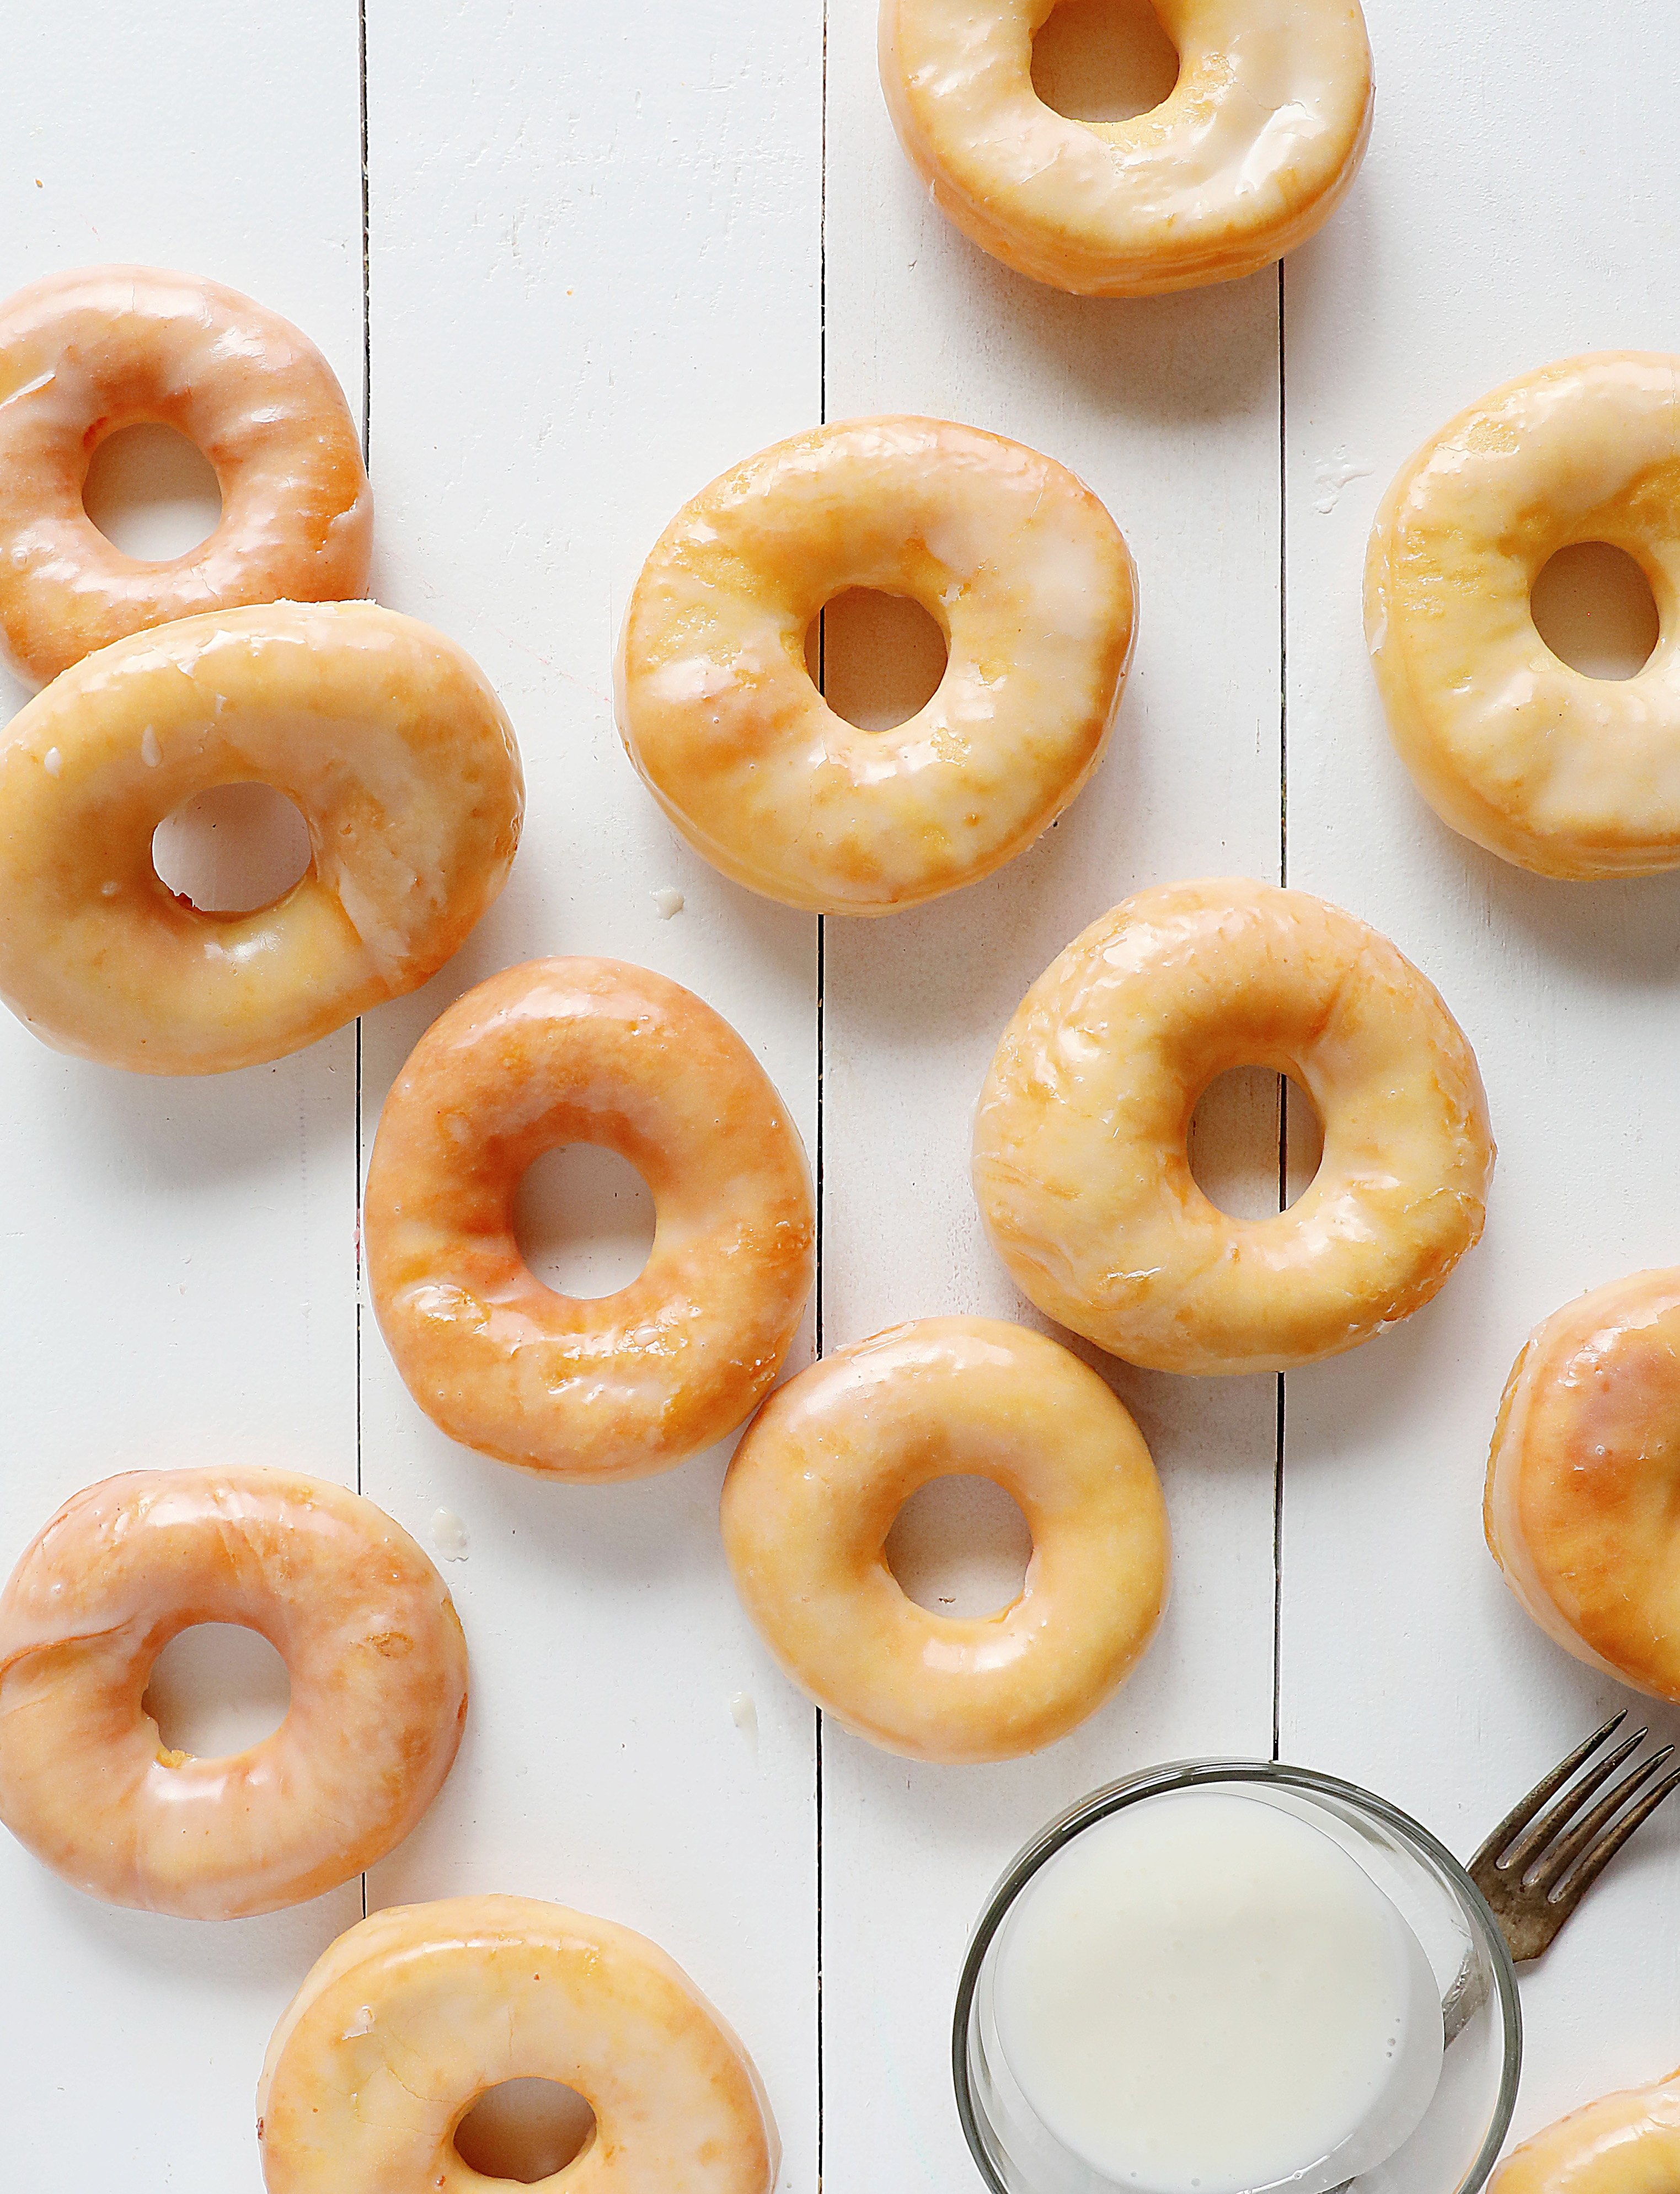 How to Make Glazed Donuts